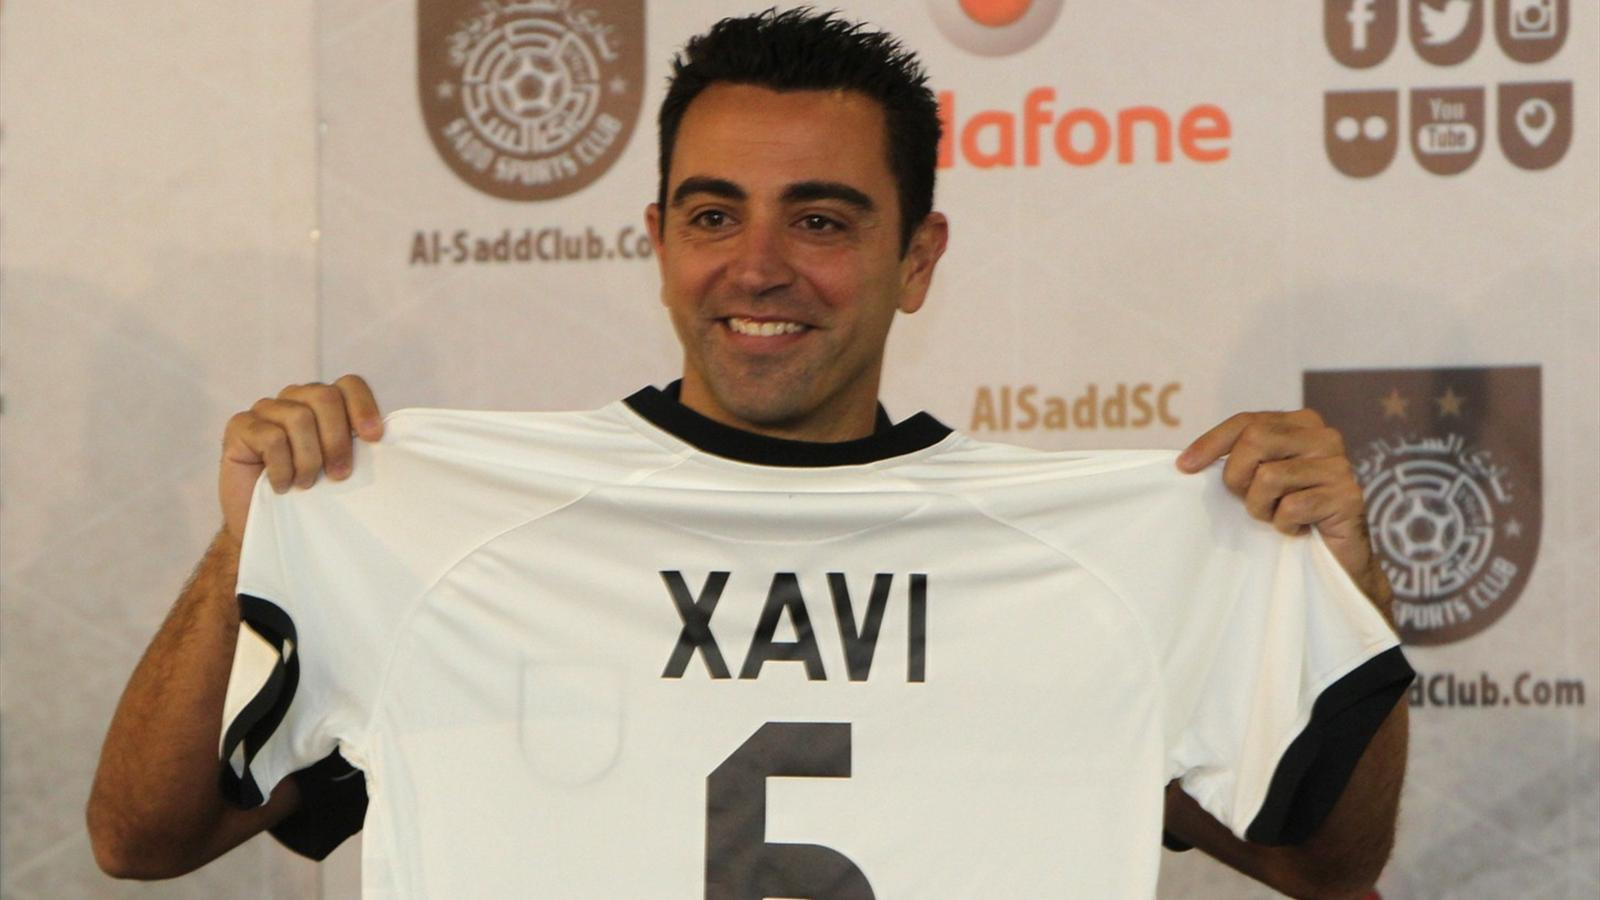 Barcelona legend Xavi Hernandez gestures in his new Al-Sadd club shirt after signing a two-year contract with the Qatari football team in Doha on June 11, 2015